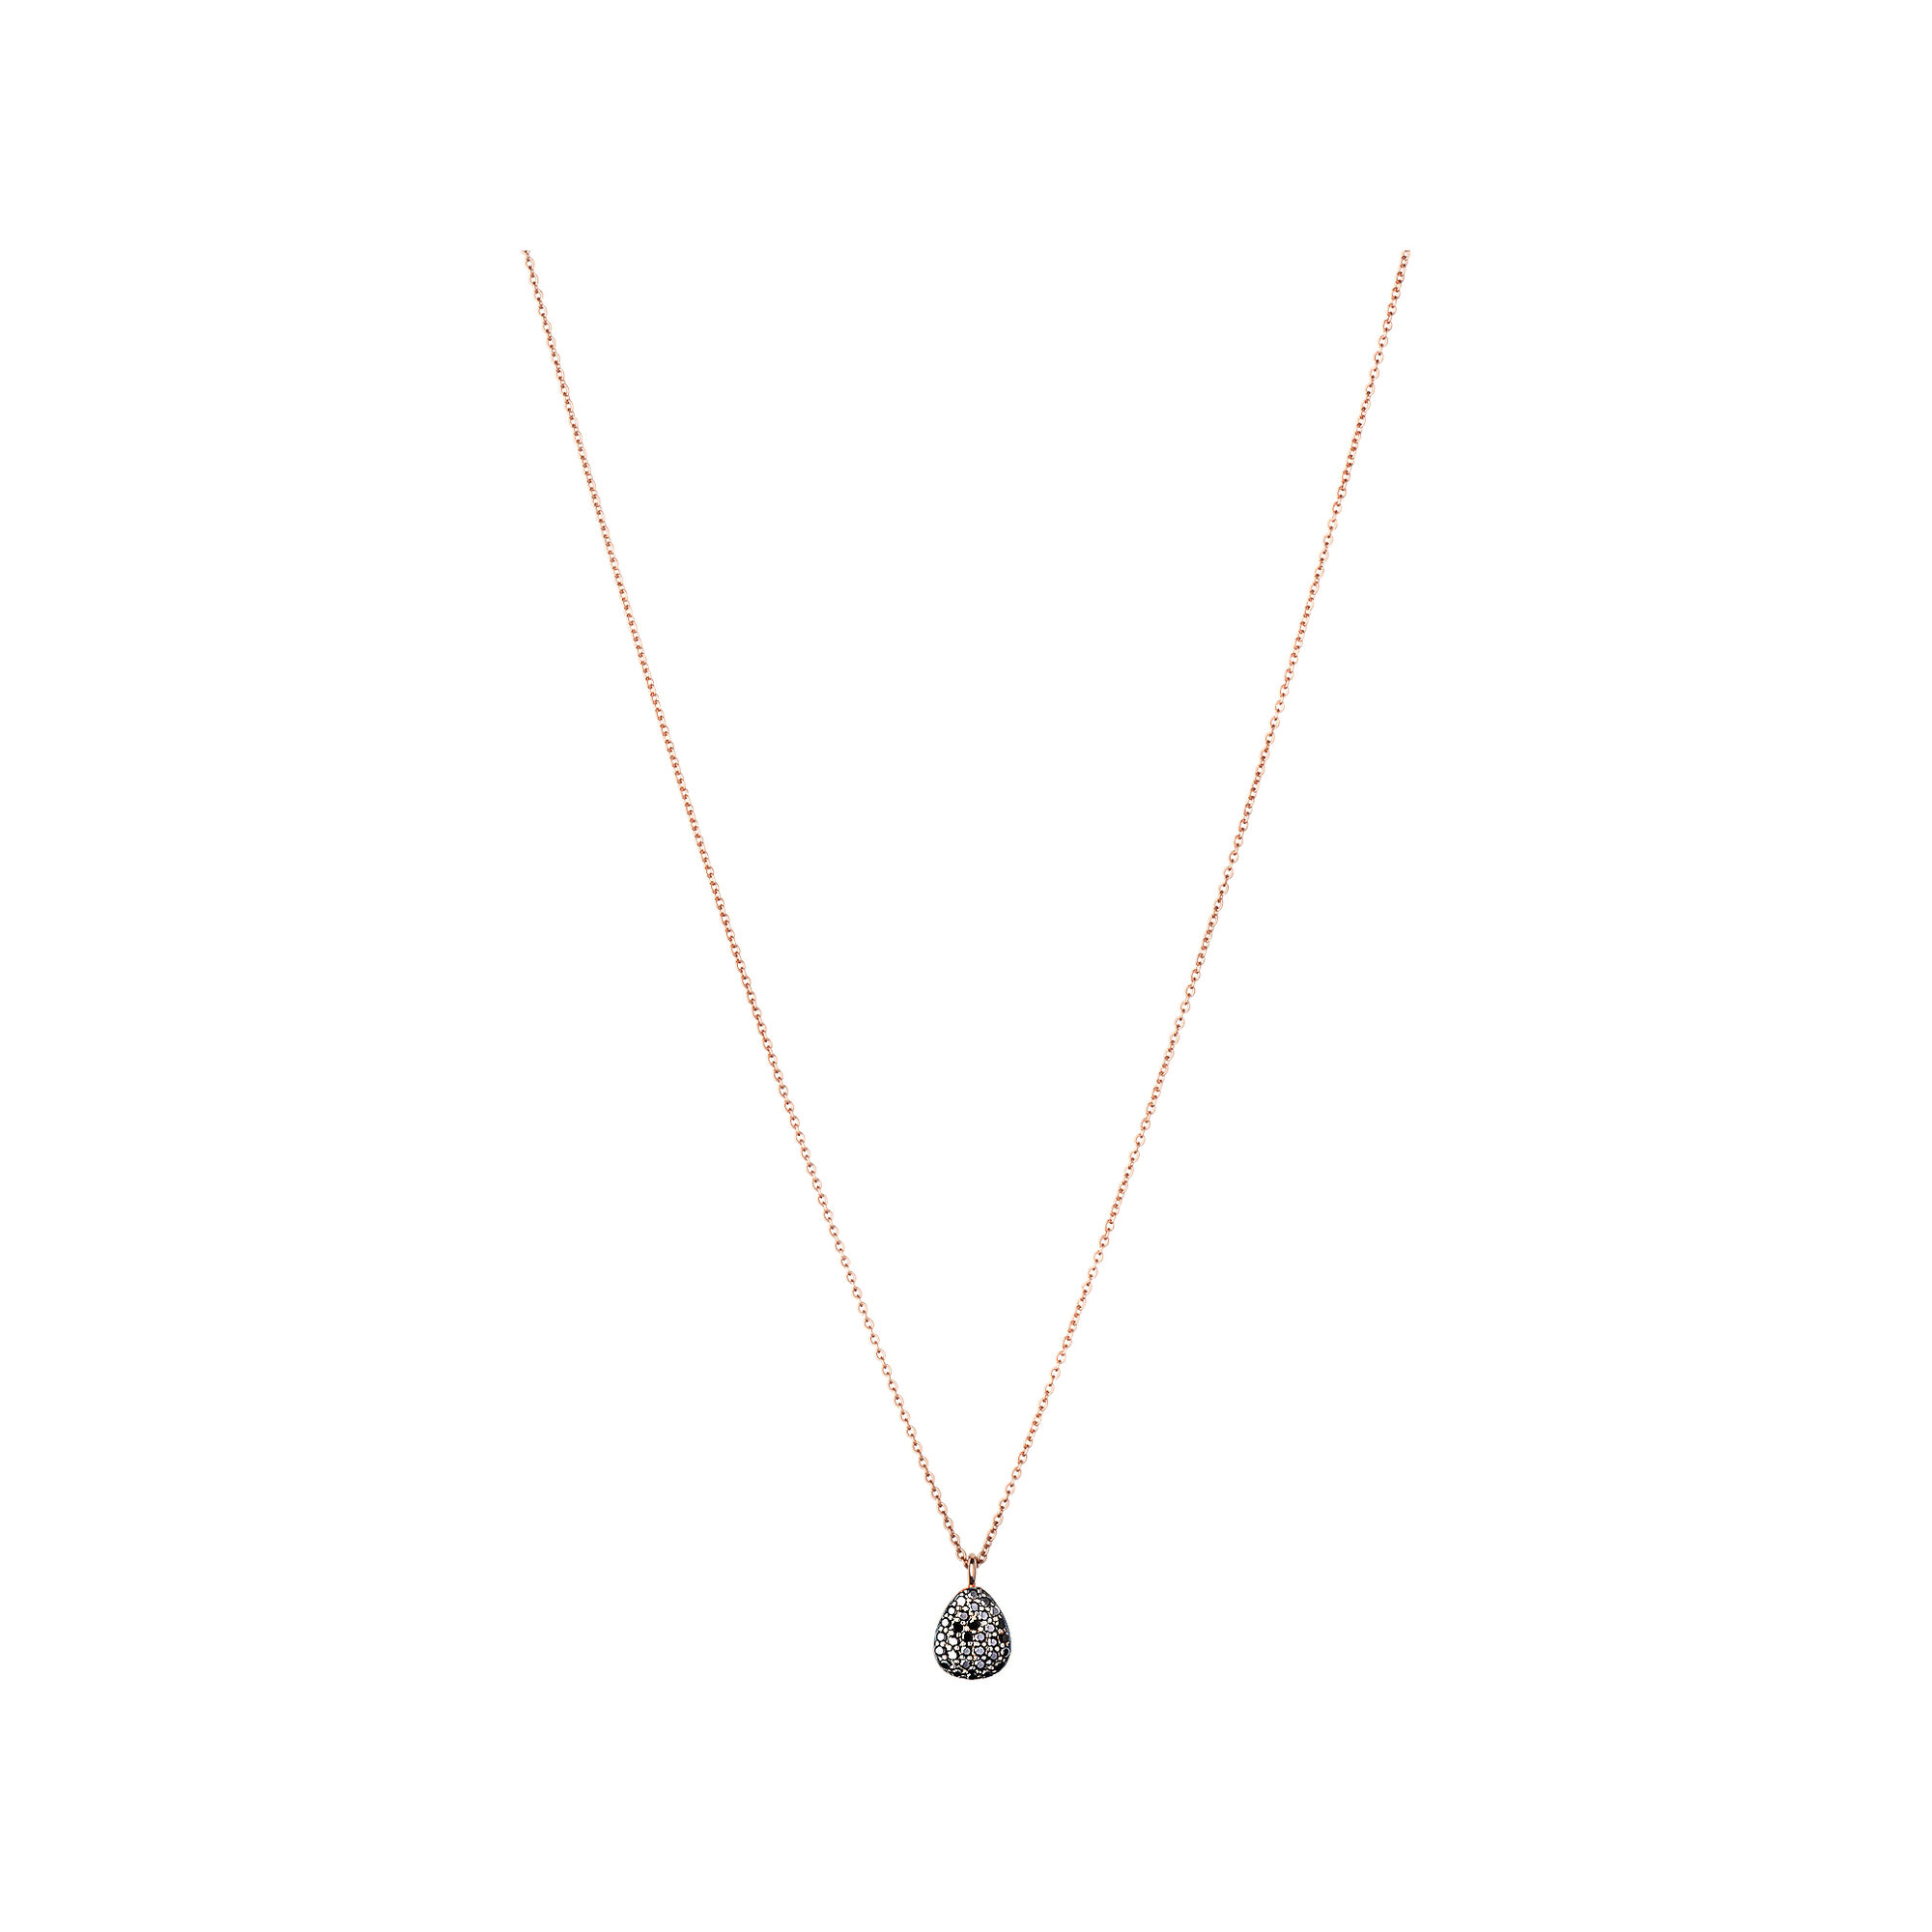 cubed pendants newtwist fine w diamond kellin gold pendant product black dana necklace by small